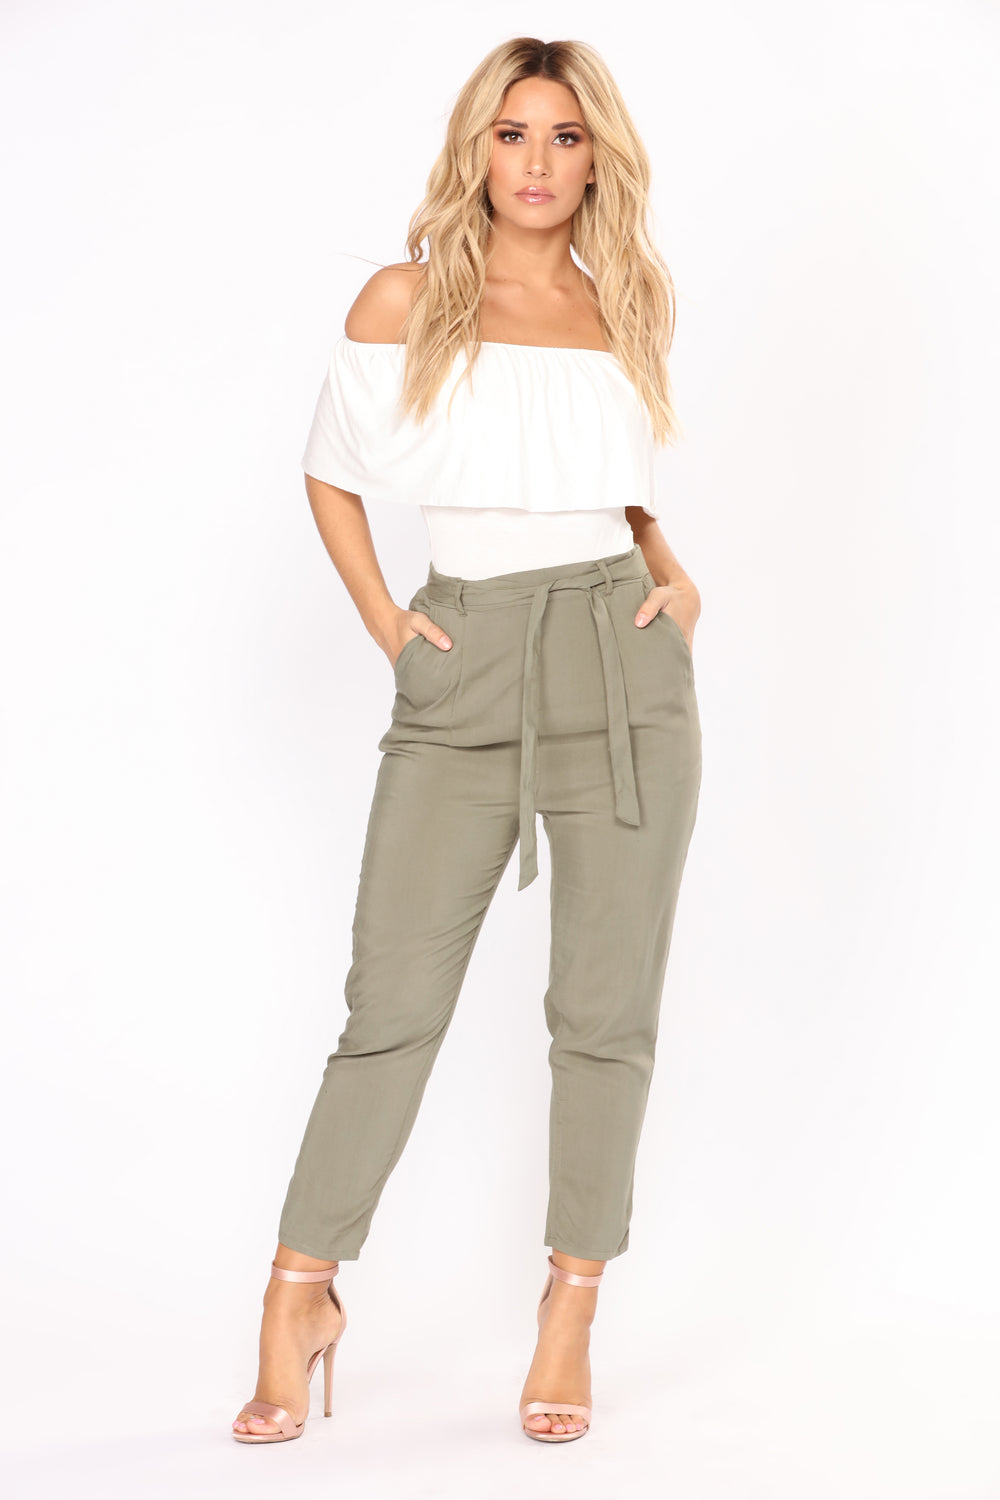 Work It Waist Tie Pants - Olive